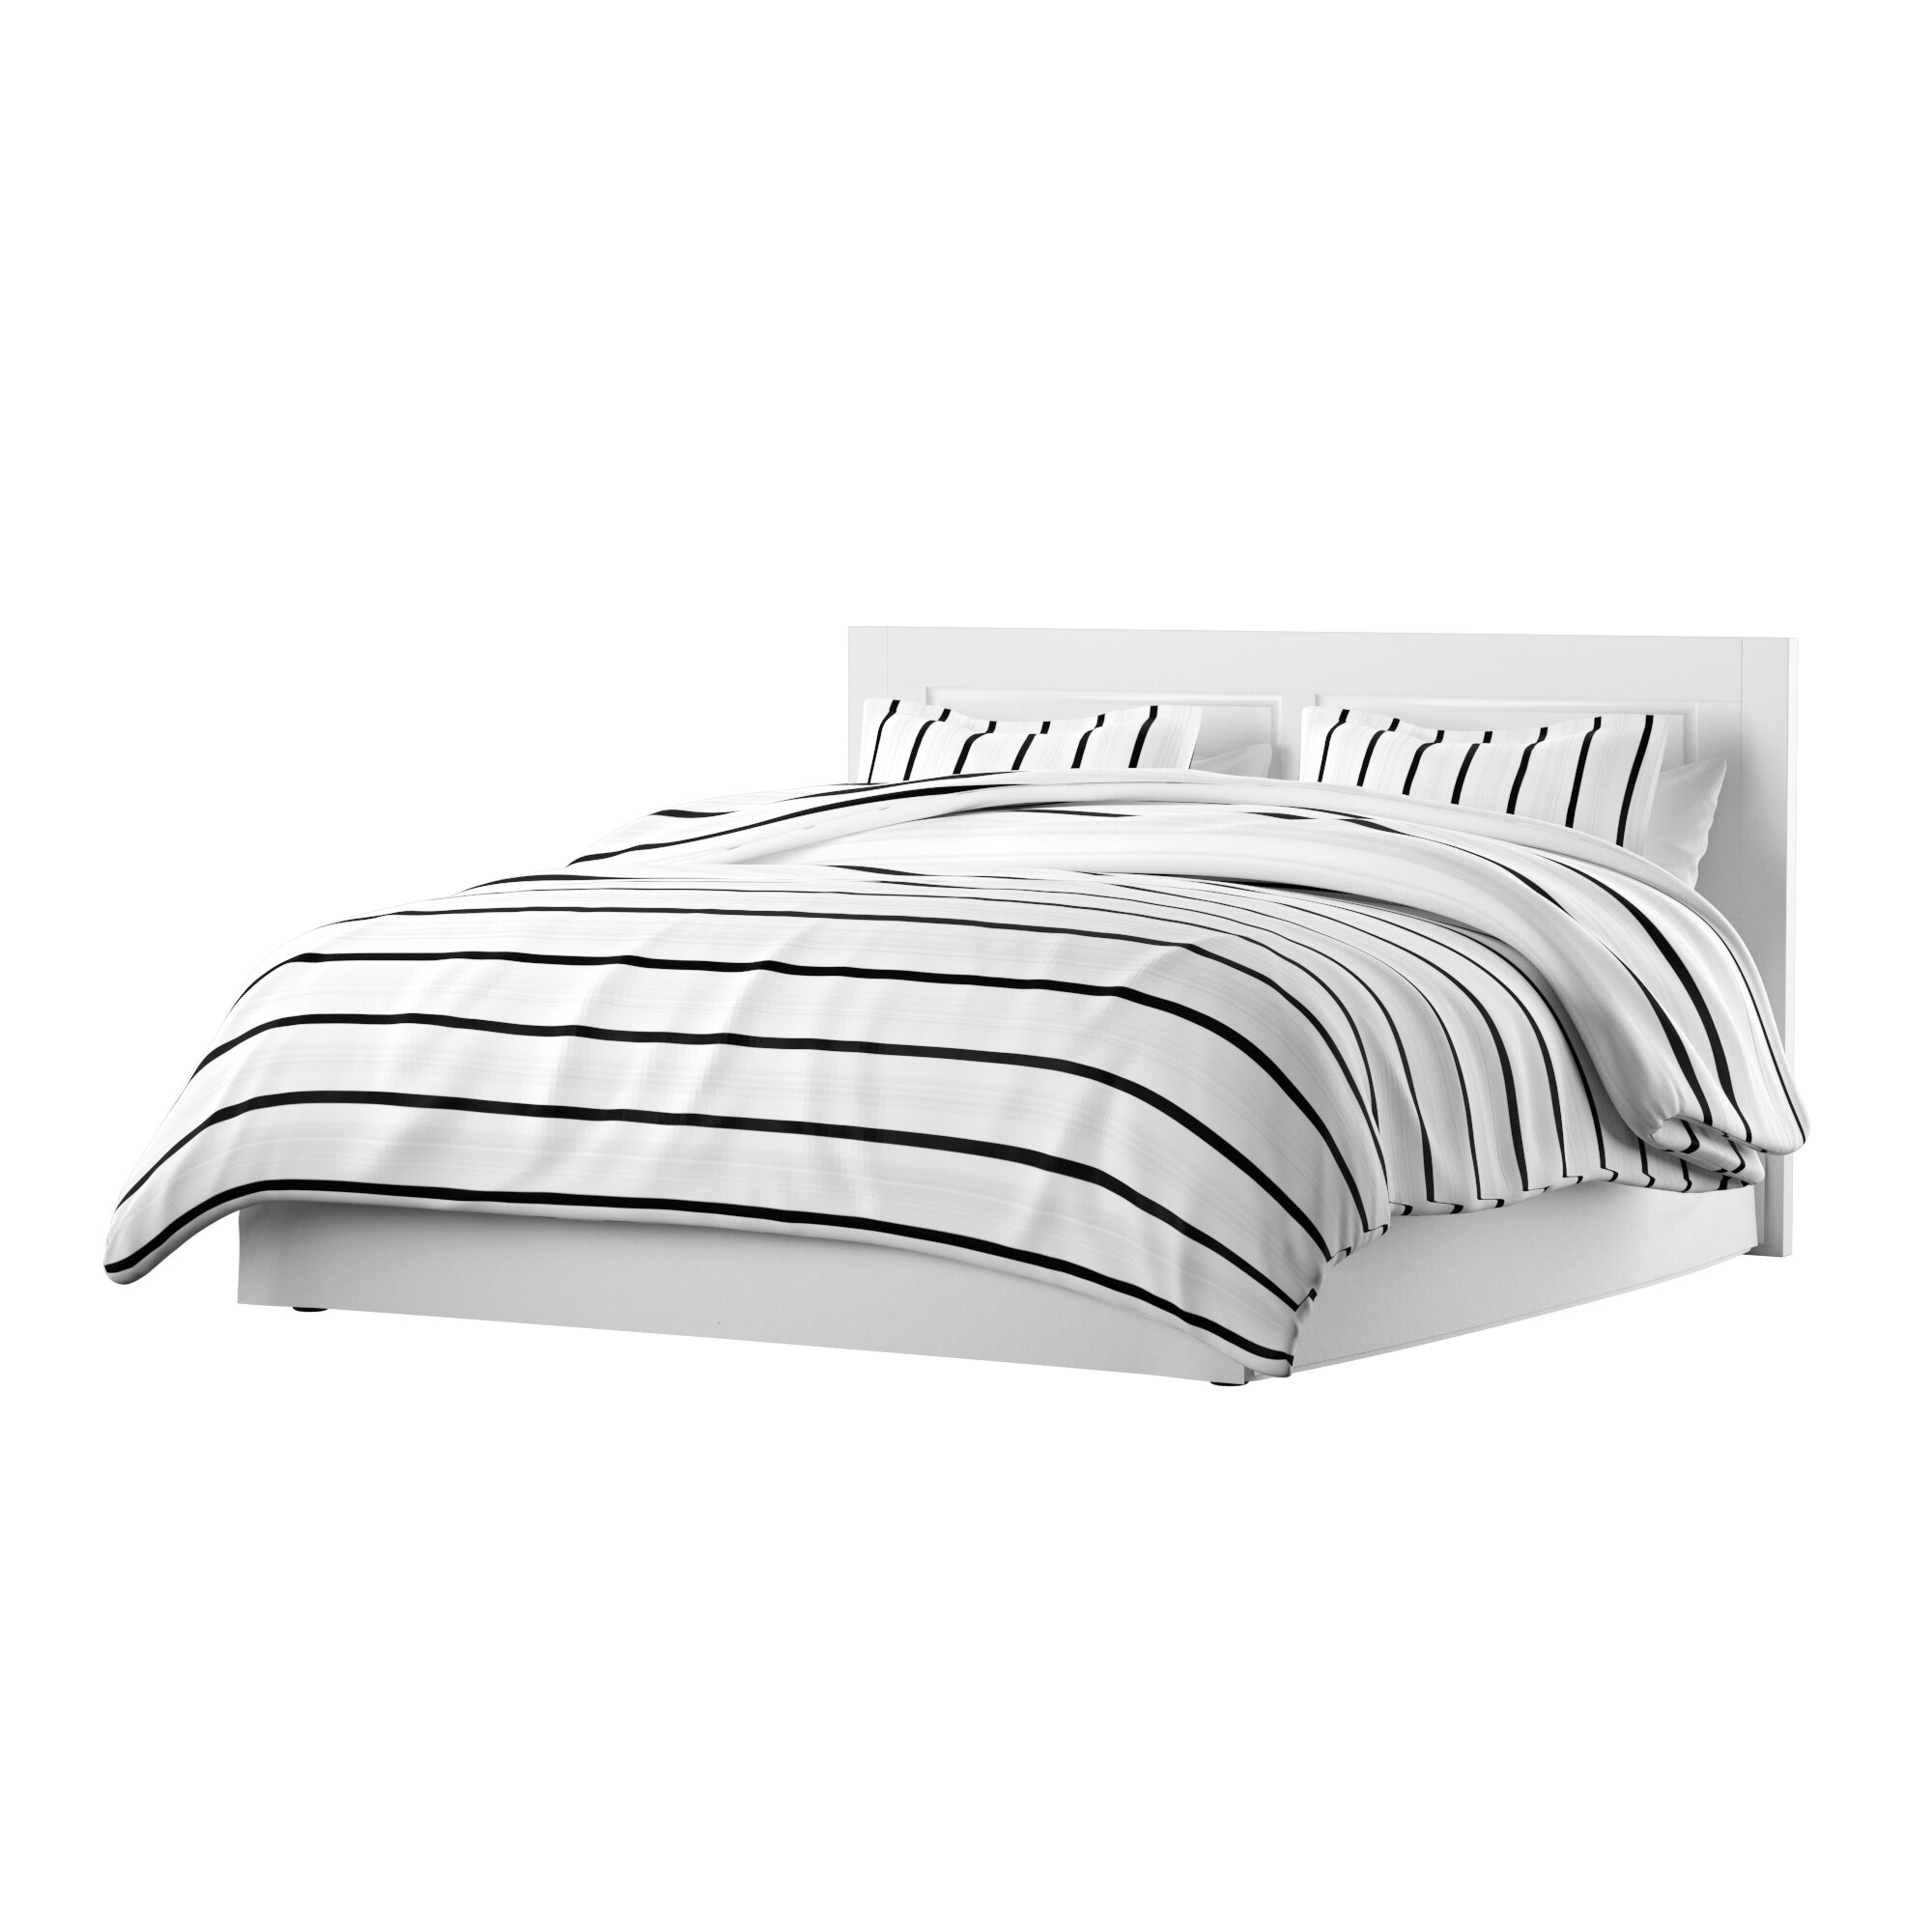 Bedding Collections Home Isleep Reversible Duvet Cover Bedding Set Black White Single Double Full Bed